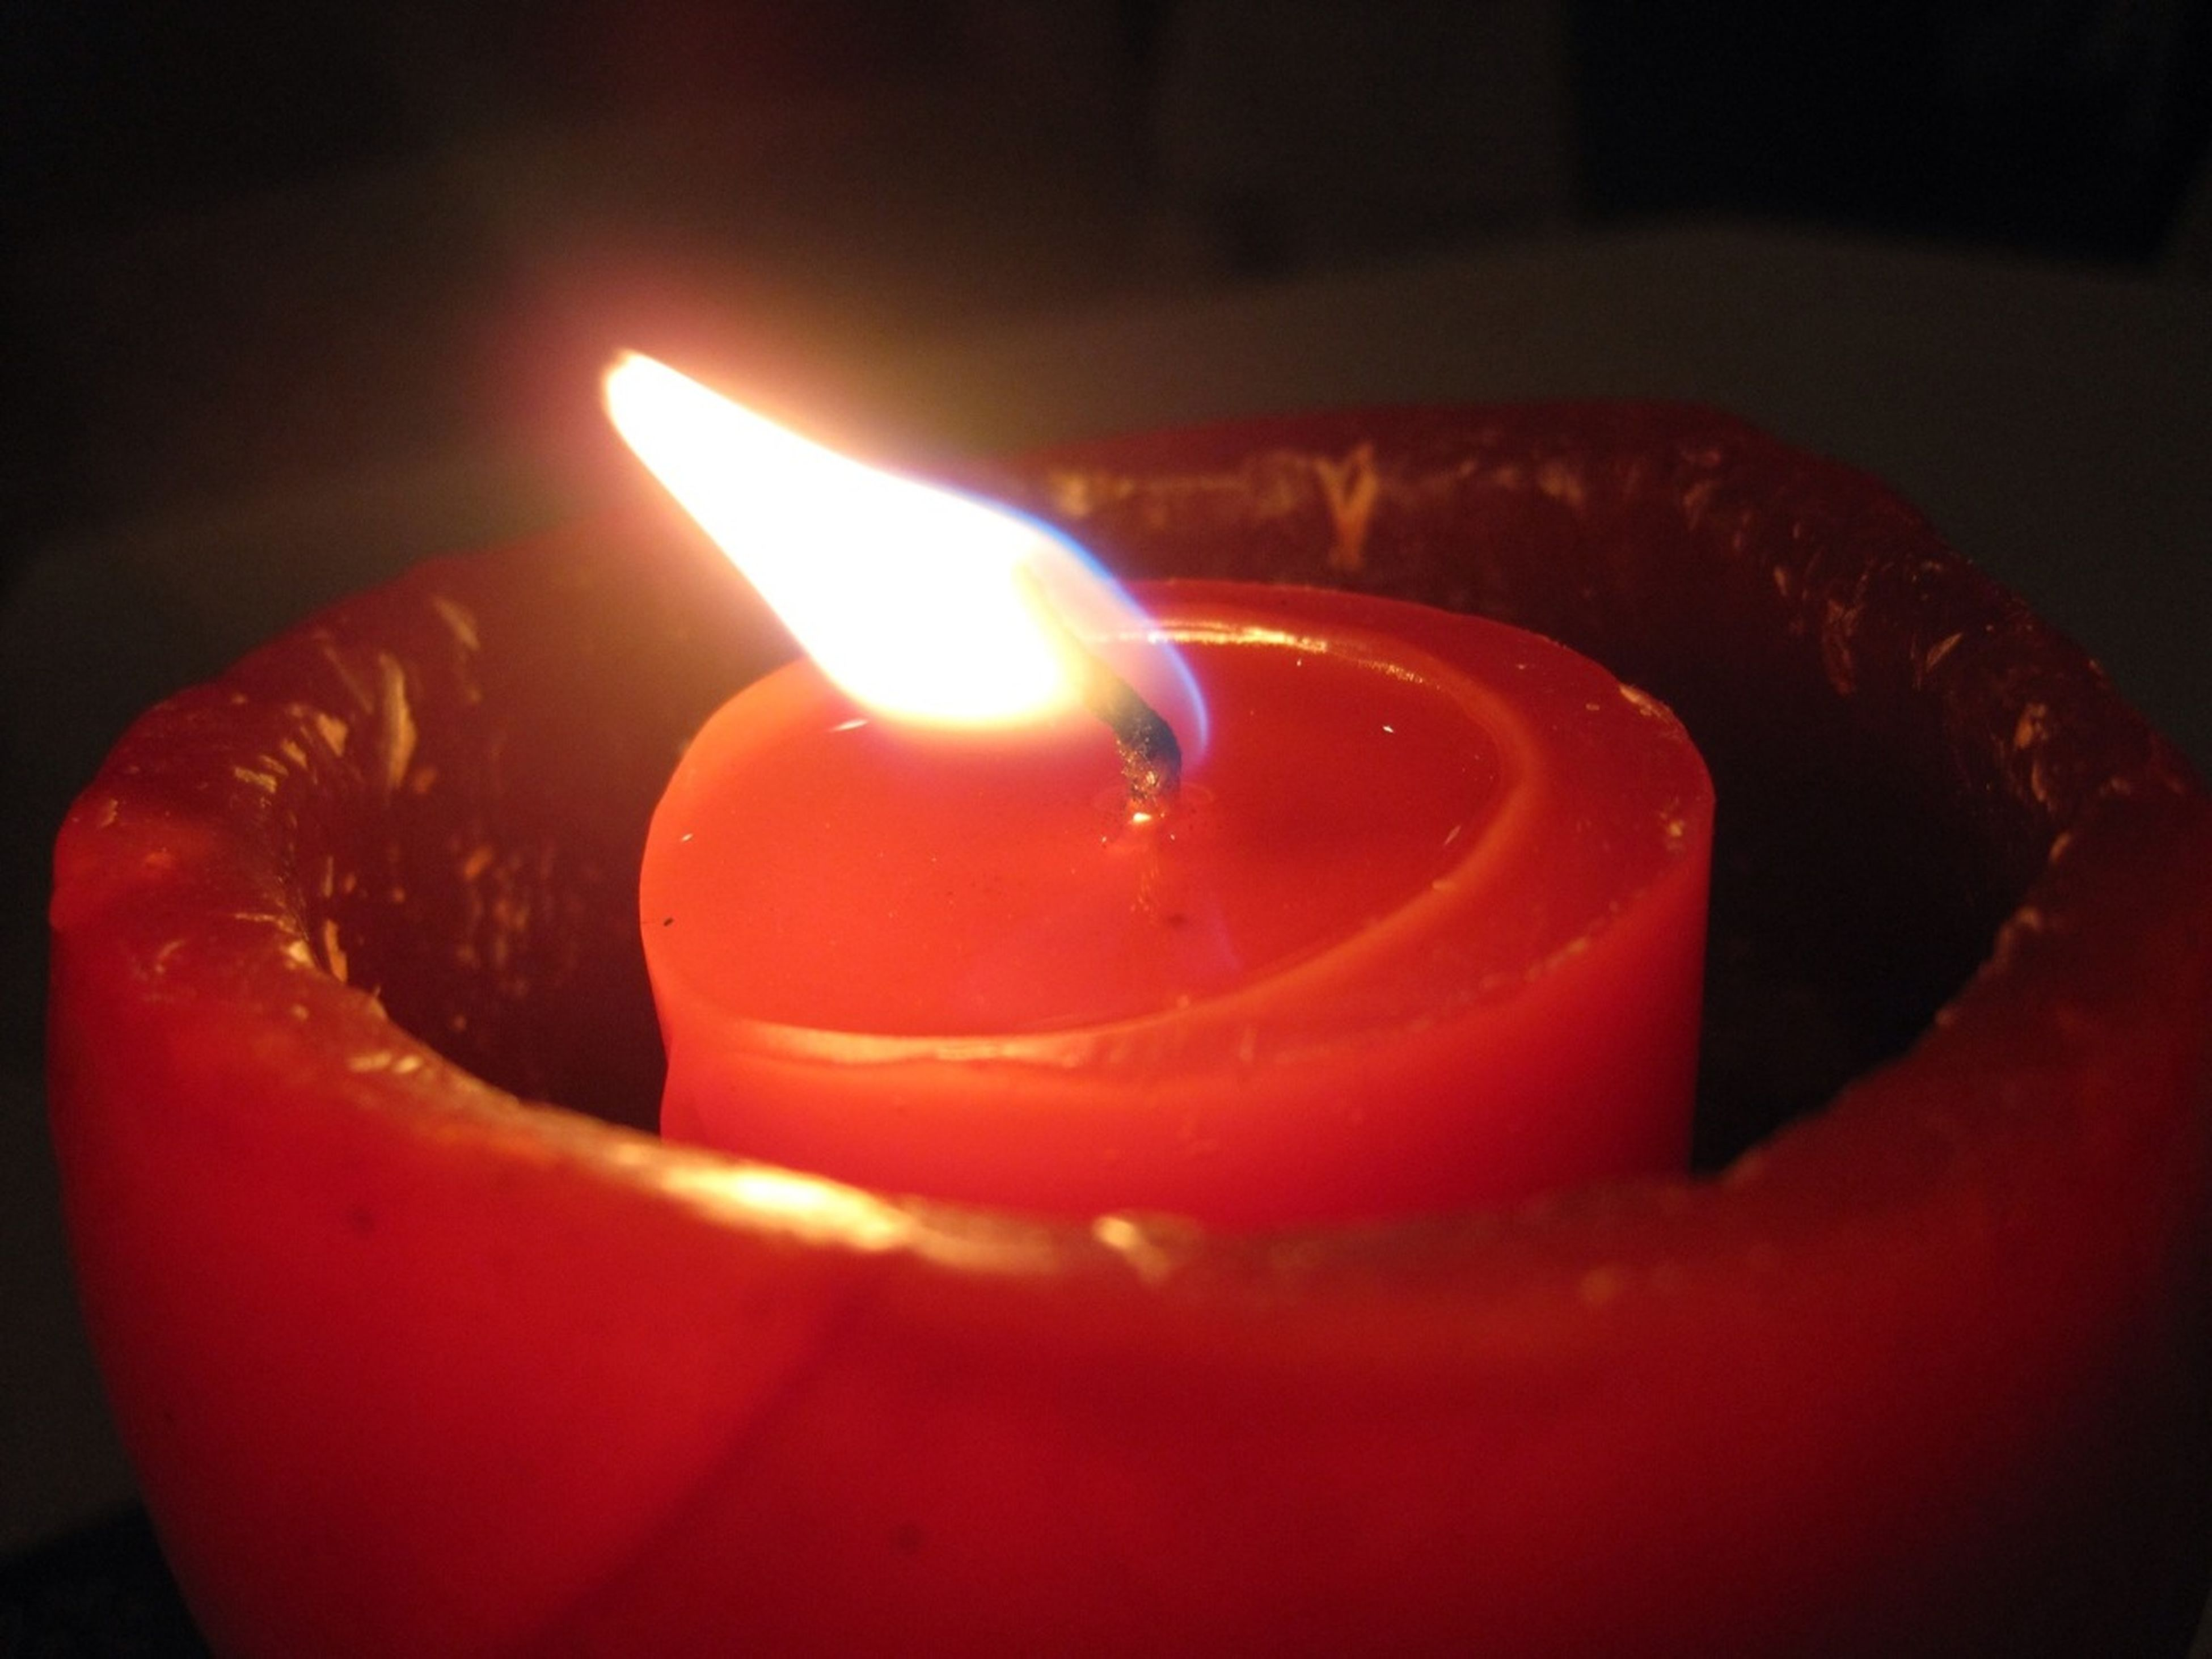 flame, burning, fire - natural phenomenon, candle, heat - temperature, indoors, glowing, close-up, illuminated, candlelight, lit, still life, fire, night, focus on foreground, selective focus, dark, red, table, tea light